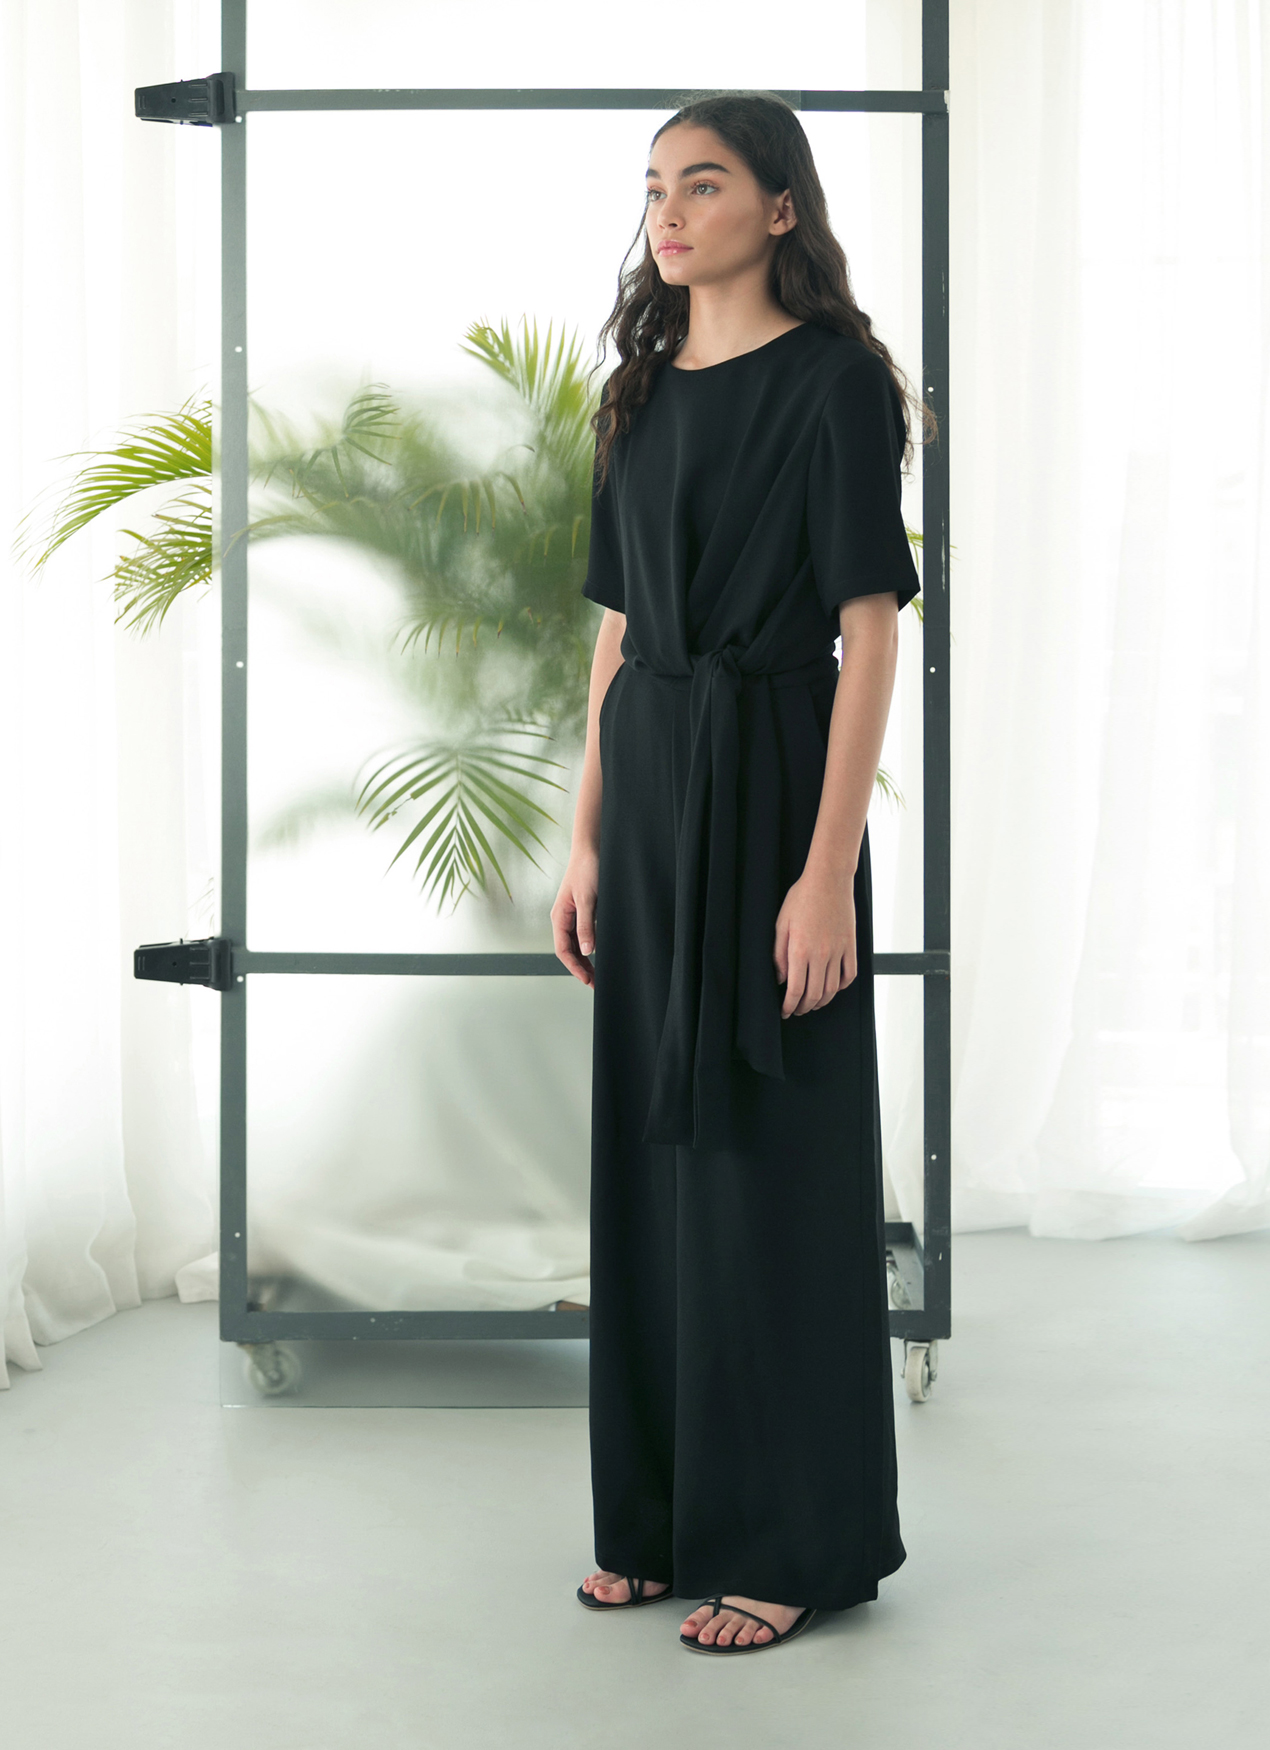 ab298447c99 Buy Original Eesome Black Figs Jumpsuit at Indonesia